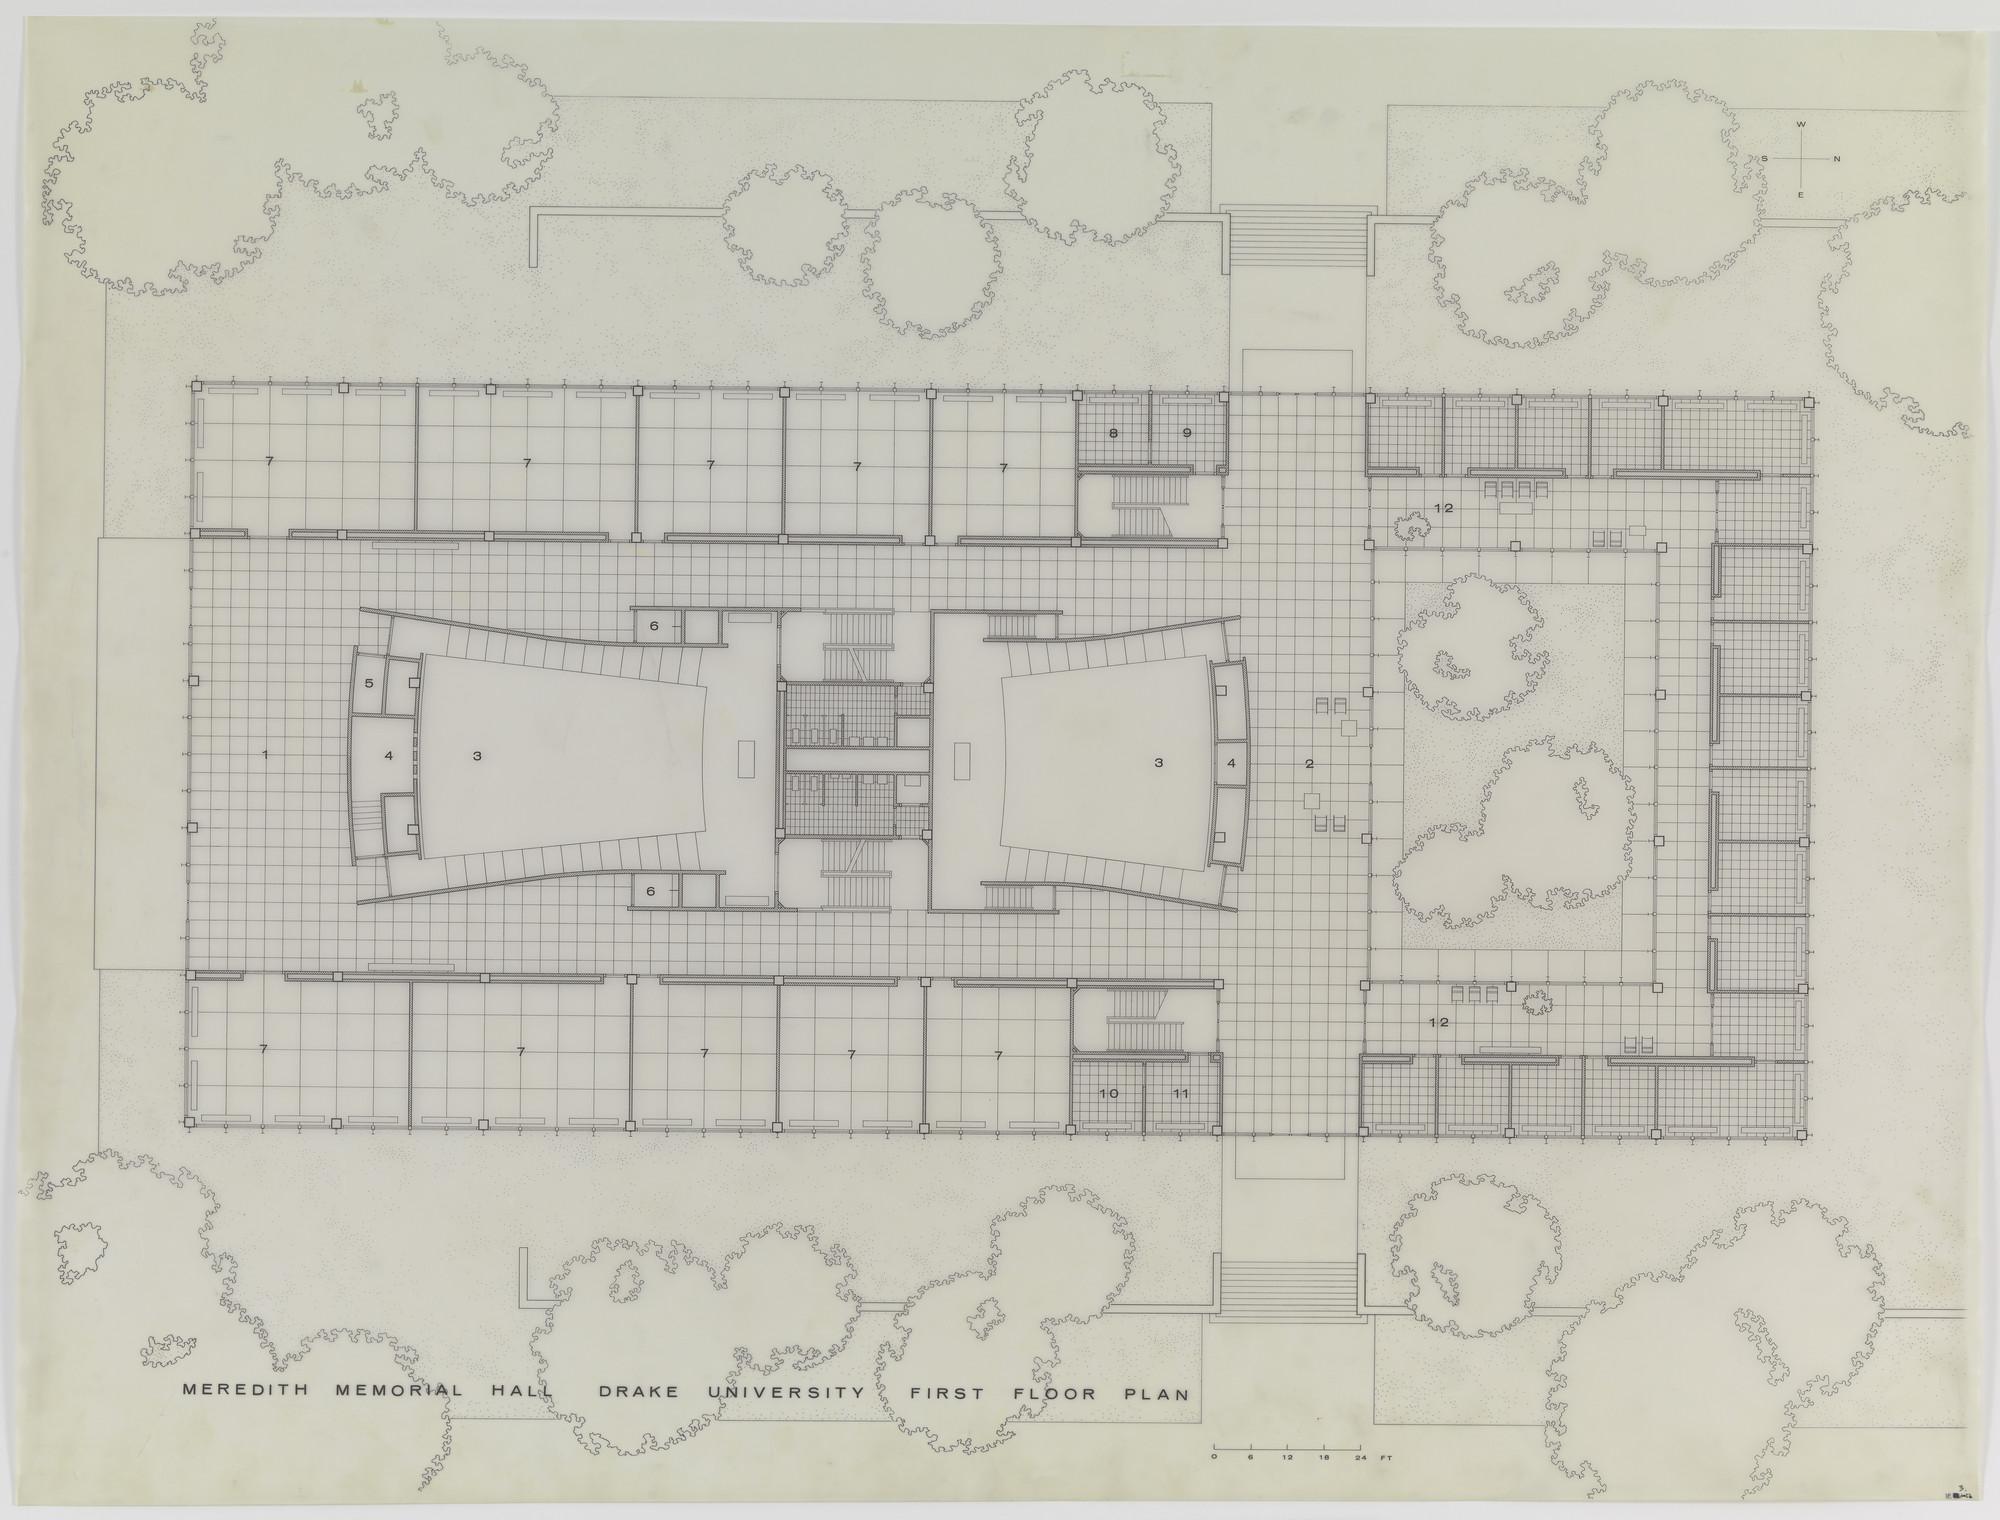 Ludwig Mies van der Rohe. Meredith Memorial Hall, Drake University, Des Moines, IA, First floor plan. 1962–1965